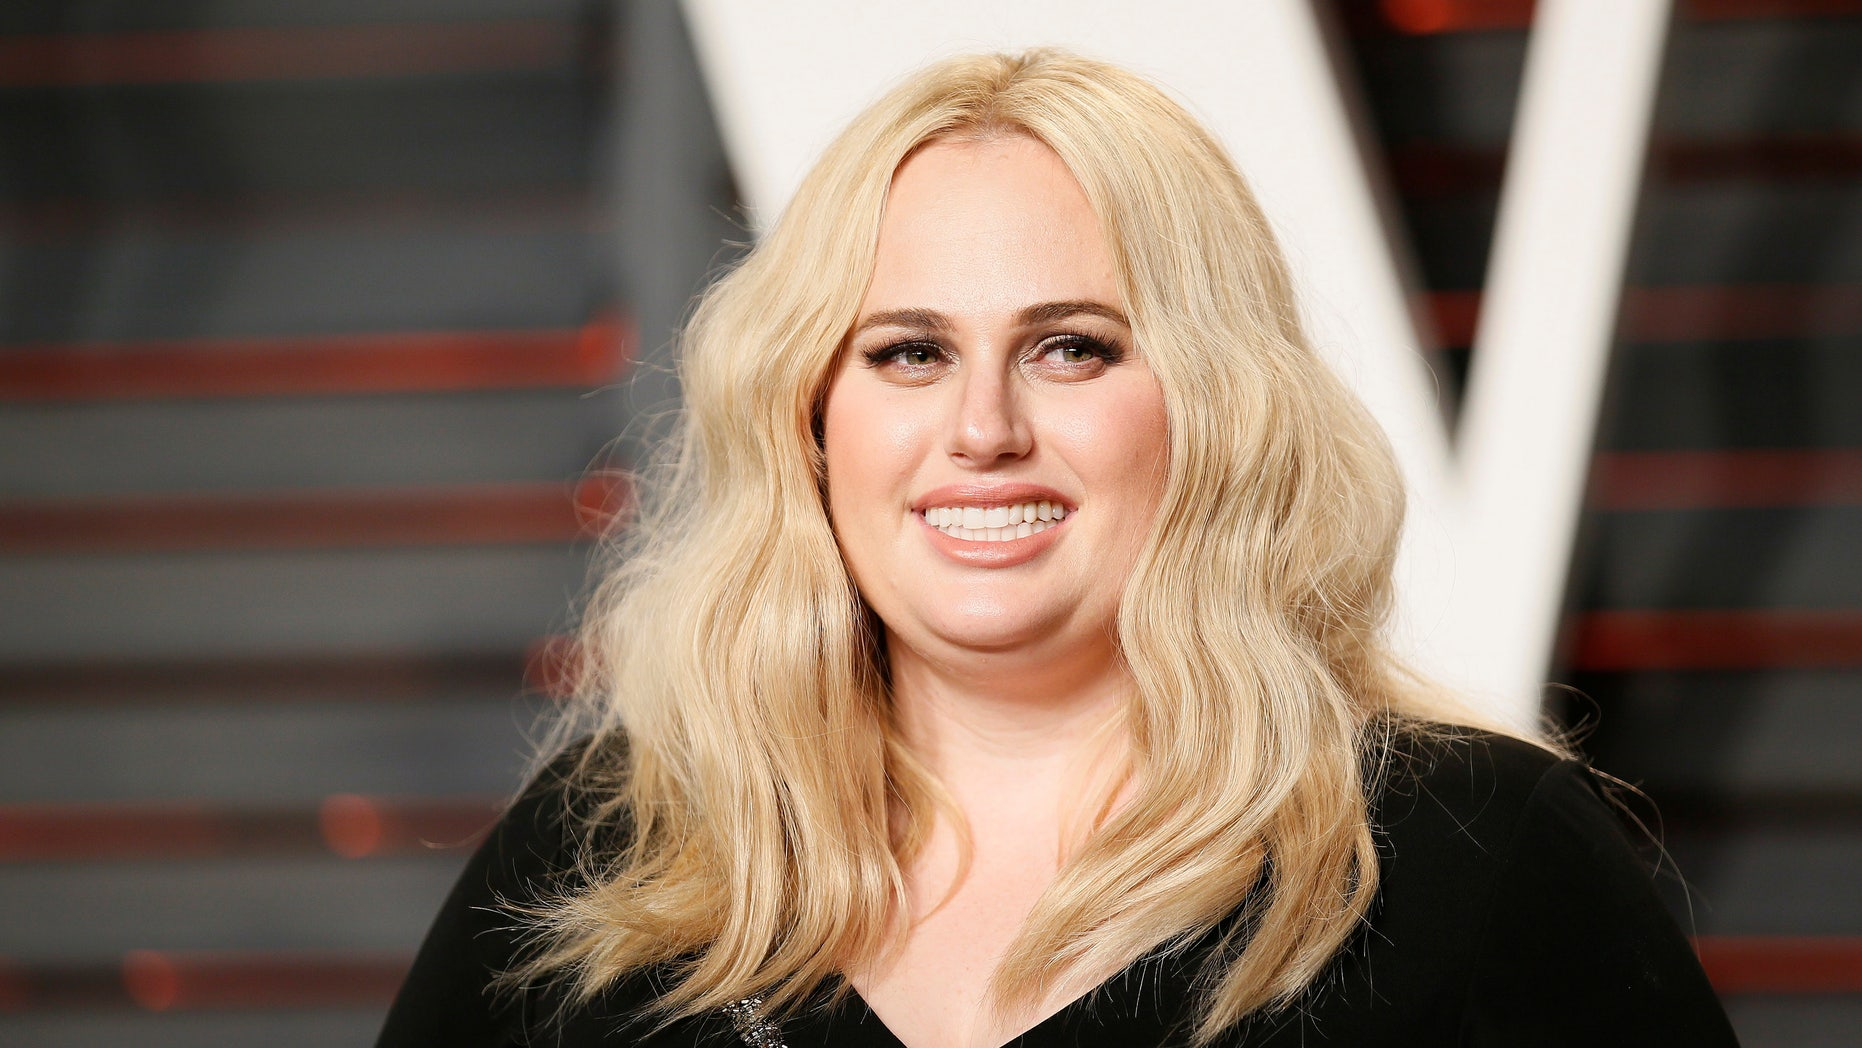 Rebel Wilson's defamation battle ends as High Court rejects bid for appeal